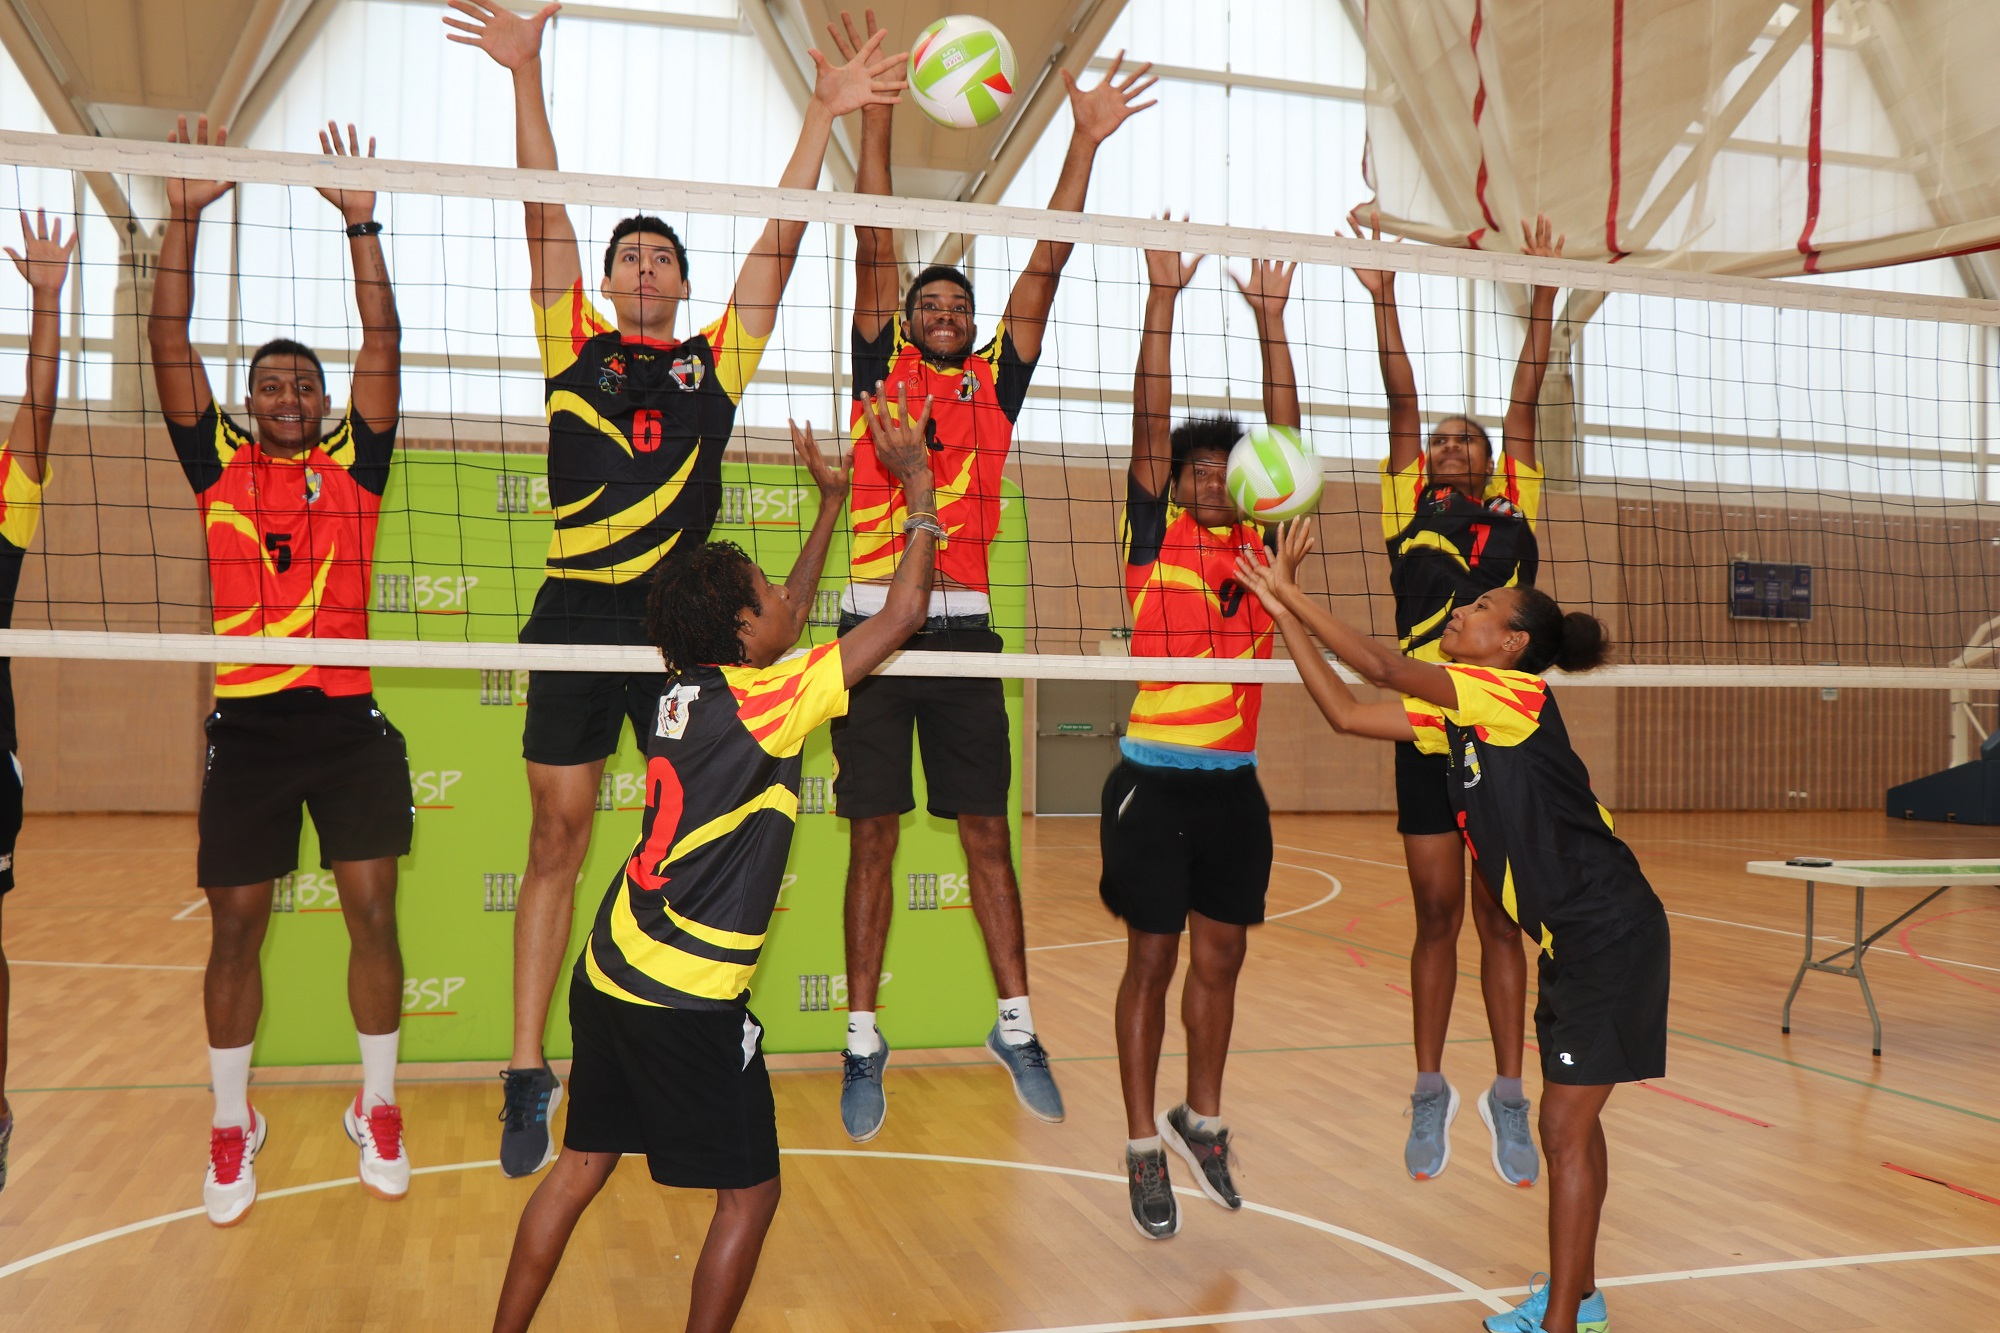 BSP SERVES UP K50,000 TO PNG VOLLEYBALL ASSOCIATION INC